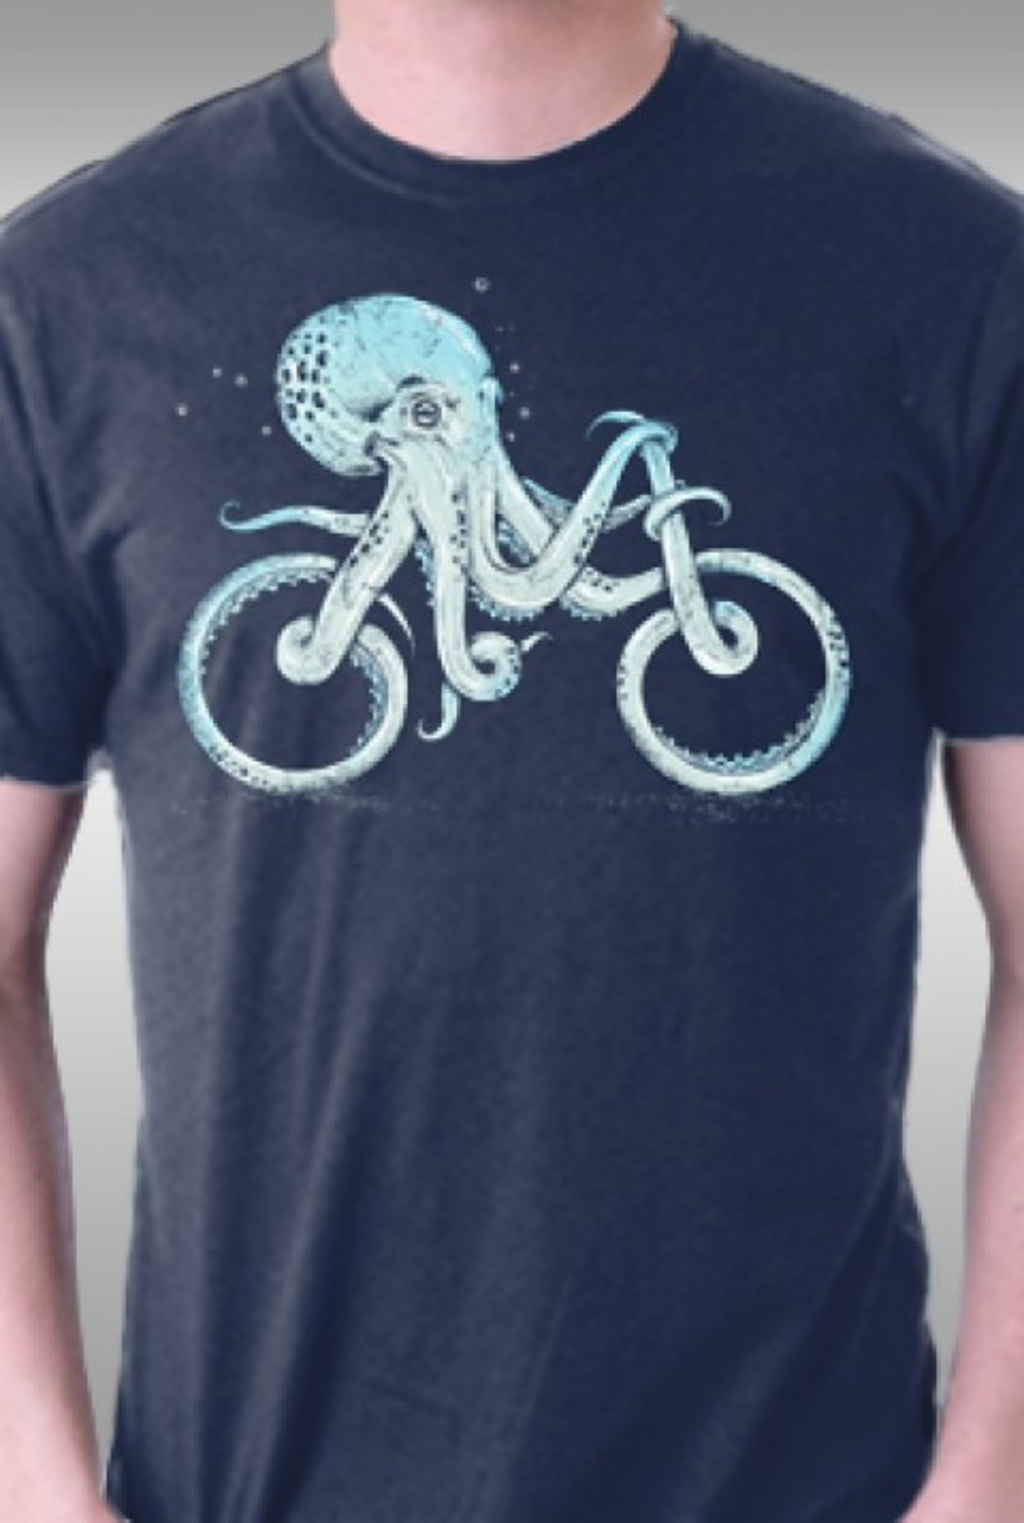 TeeFury: Cephalo-cycle